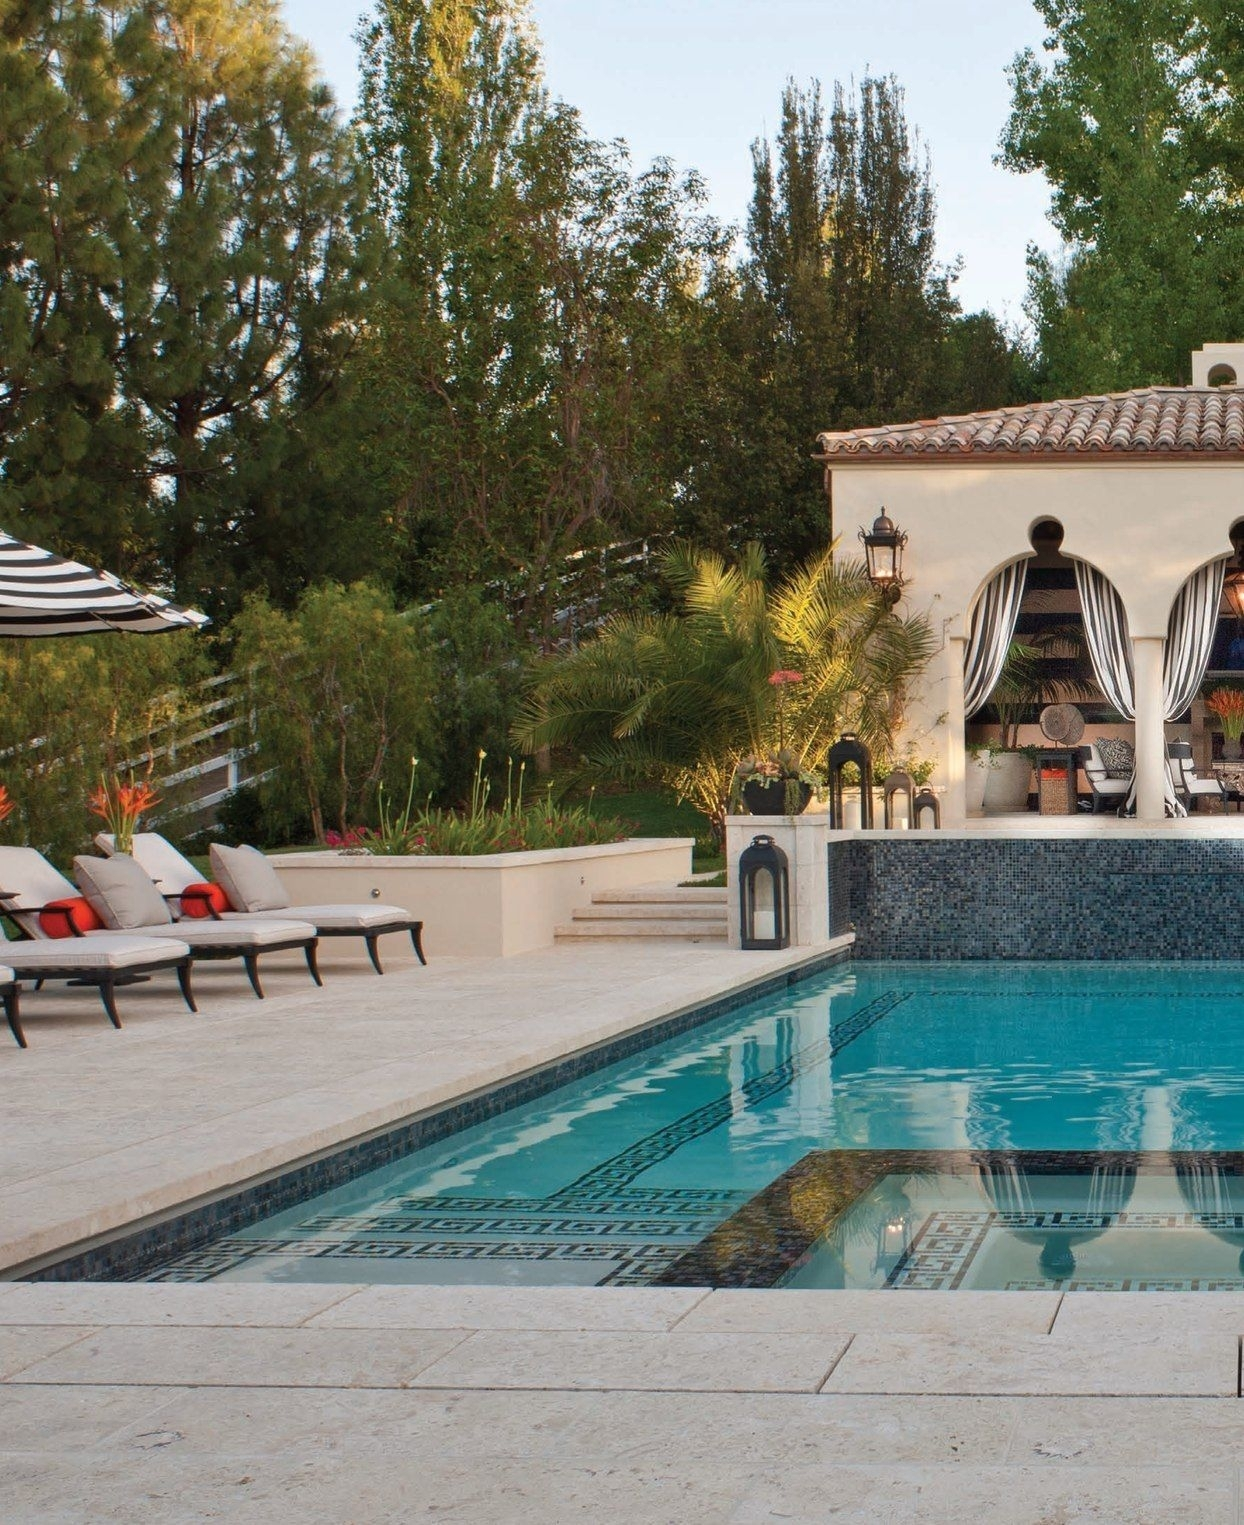 Outdoor Striped Drapes, Exterior Curtains, Greek Key Design In Pool throughout Outdoor Pool Lanterns (Image 19 of 20)